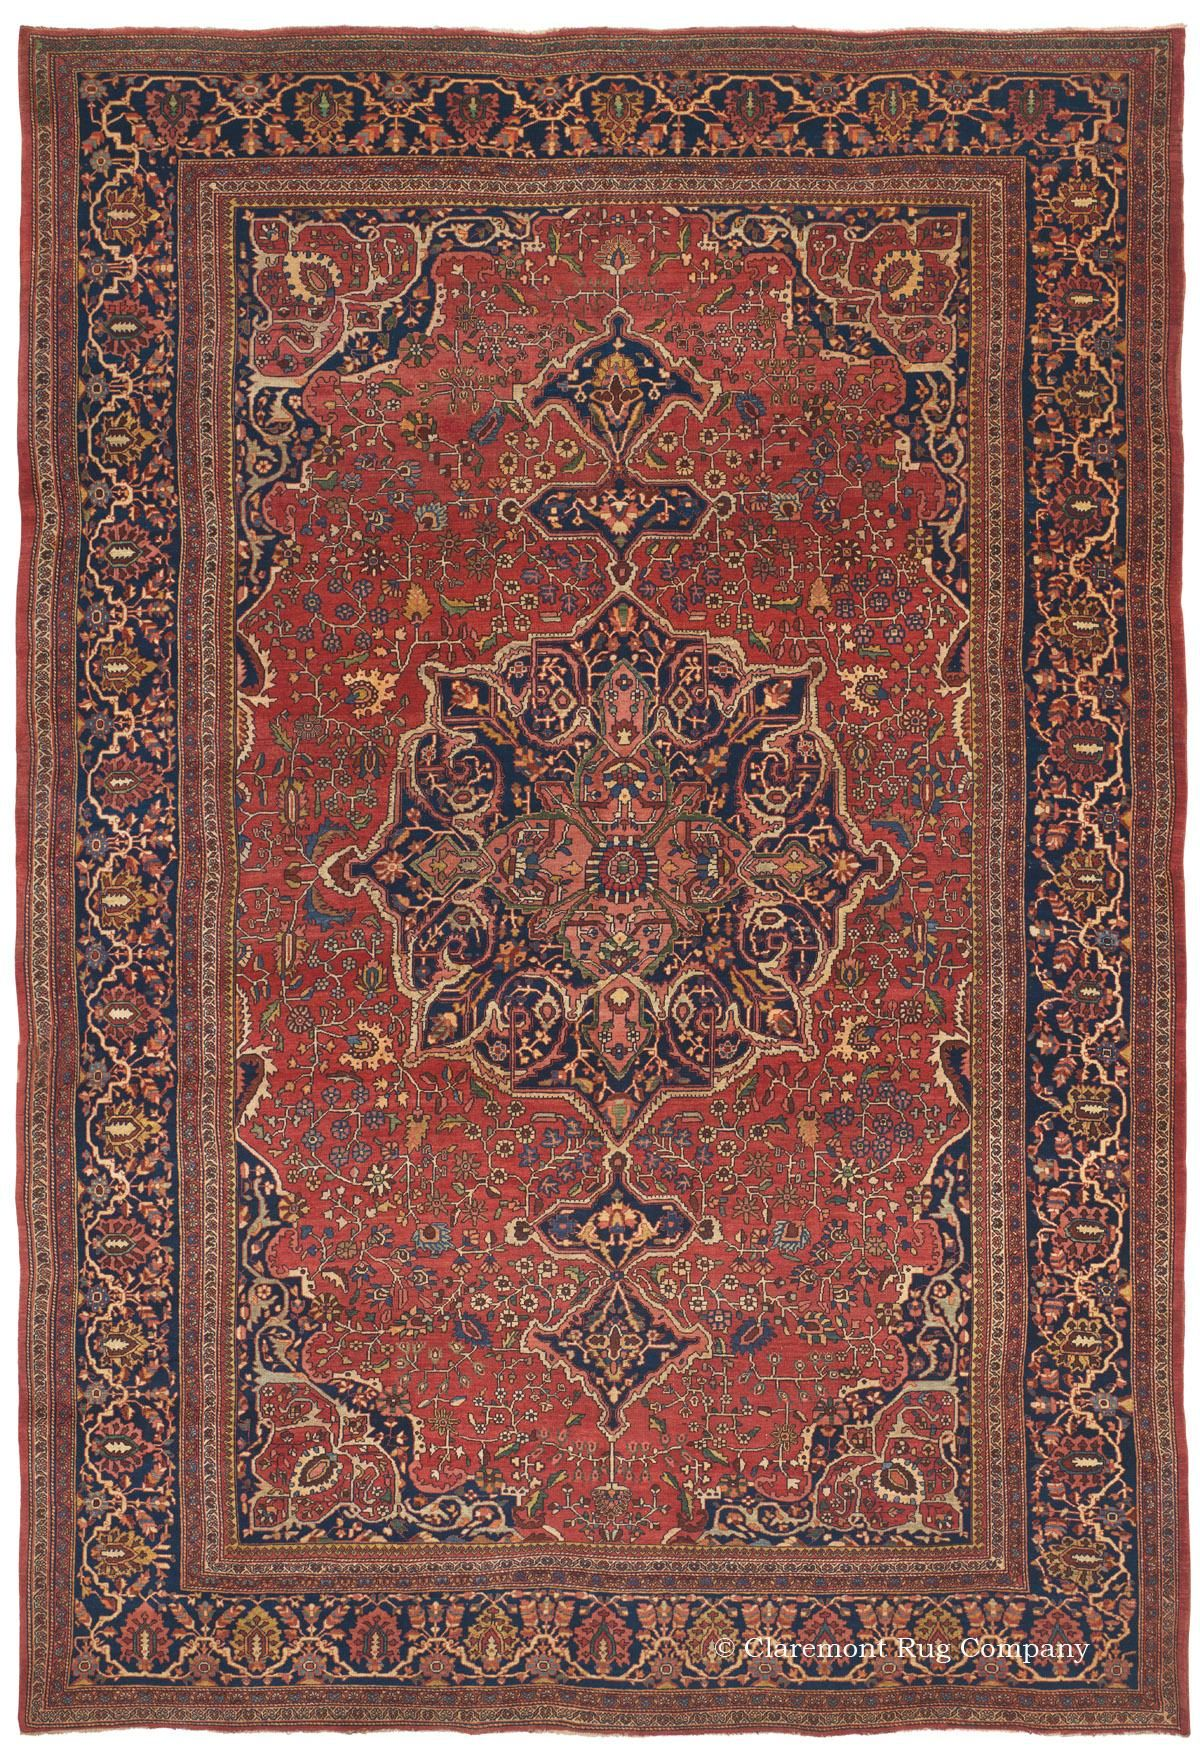 Ferahan Sarouk 8ft 9in X 12ft 9in Late 19th Century Unblemished Virtually F Rugs On Carpet Rugs Persian Carpet